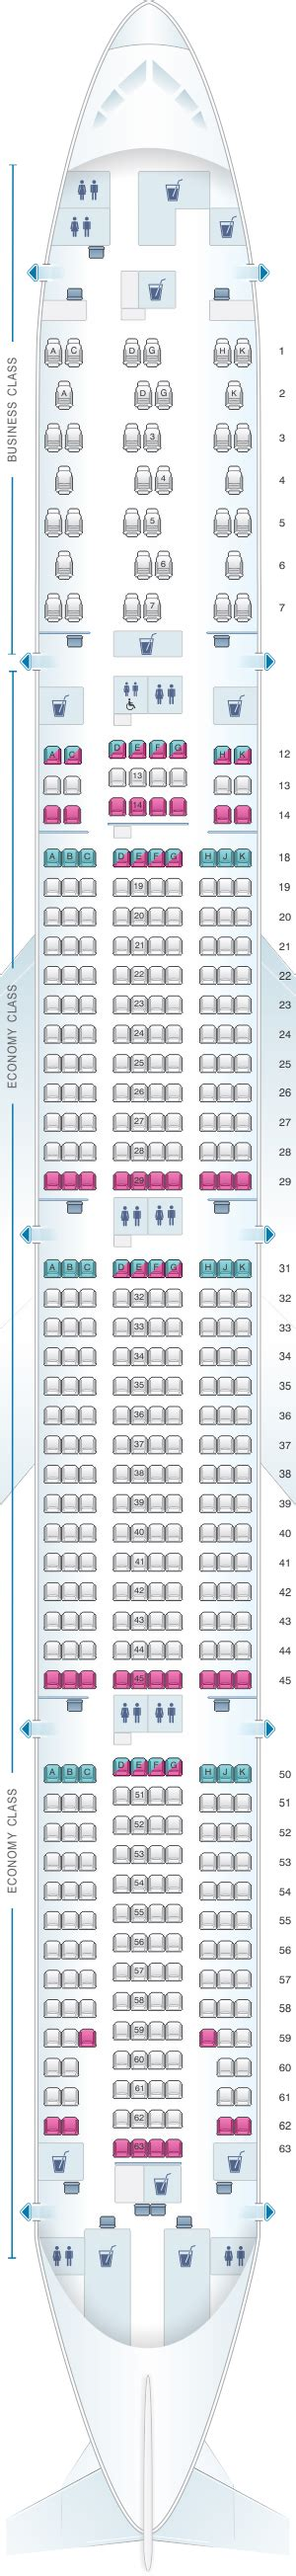 77w seat map air canada 777 300er seat map brokeasshome